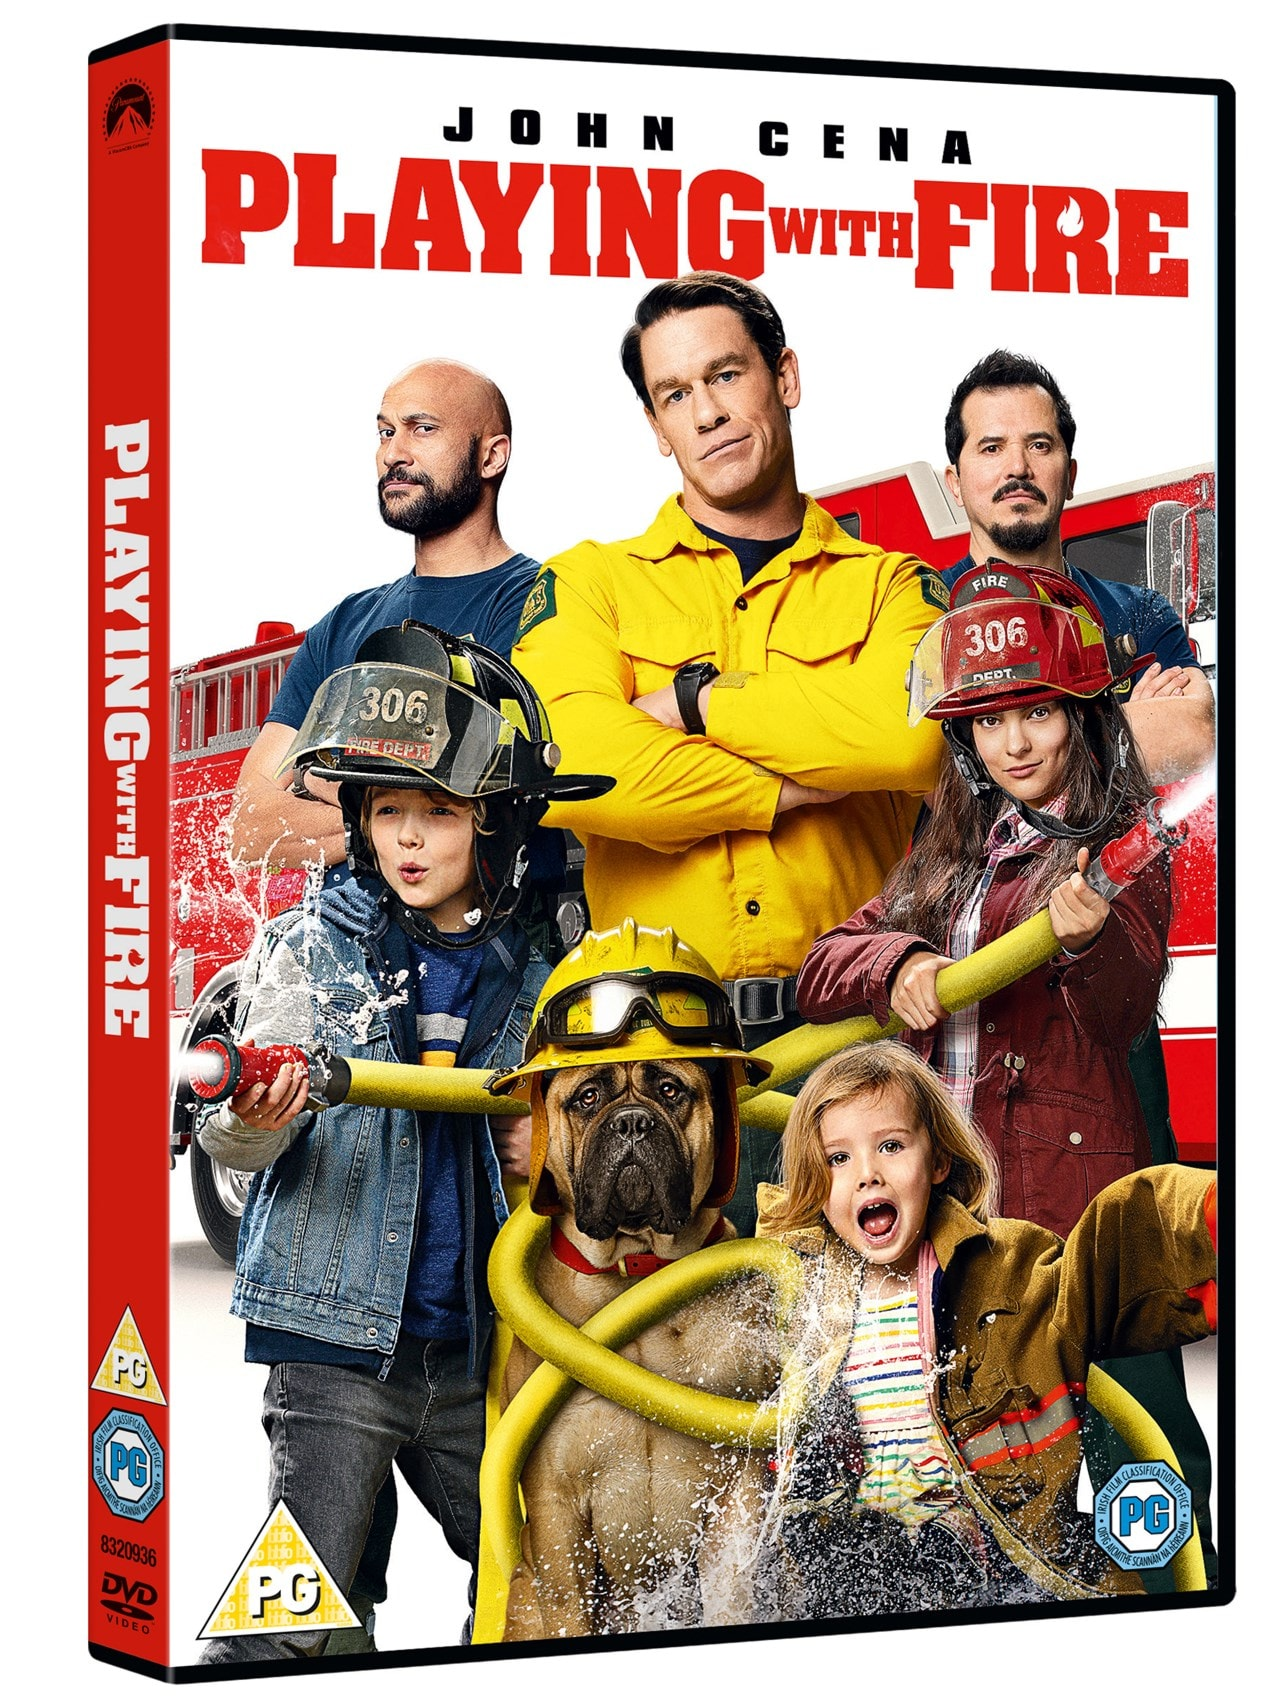 Playing With Fire  Dvd  Free Shipping Over 20  Hmv Store-3798